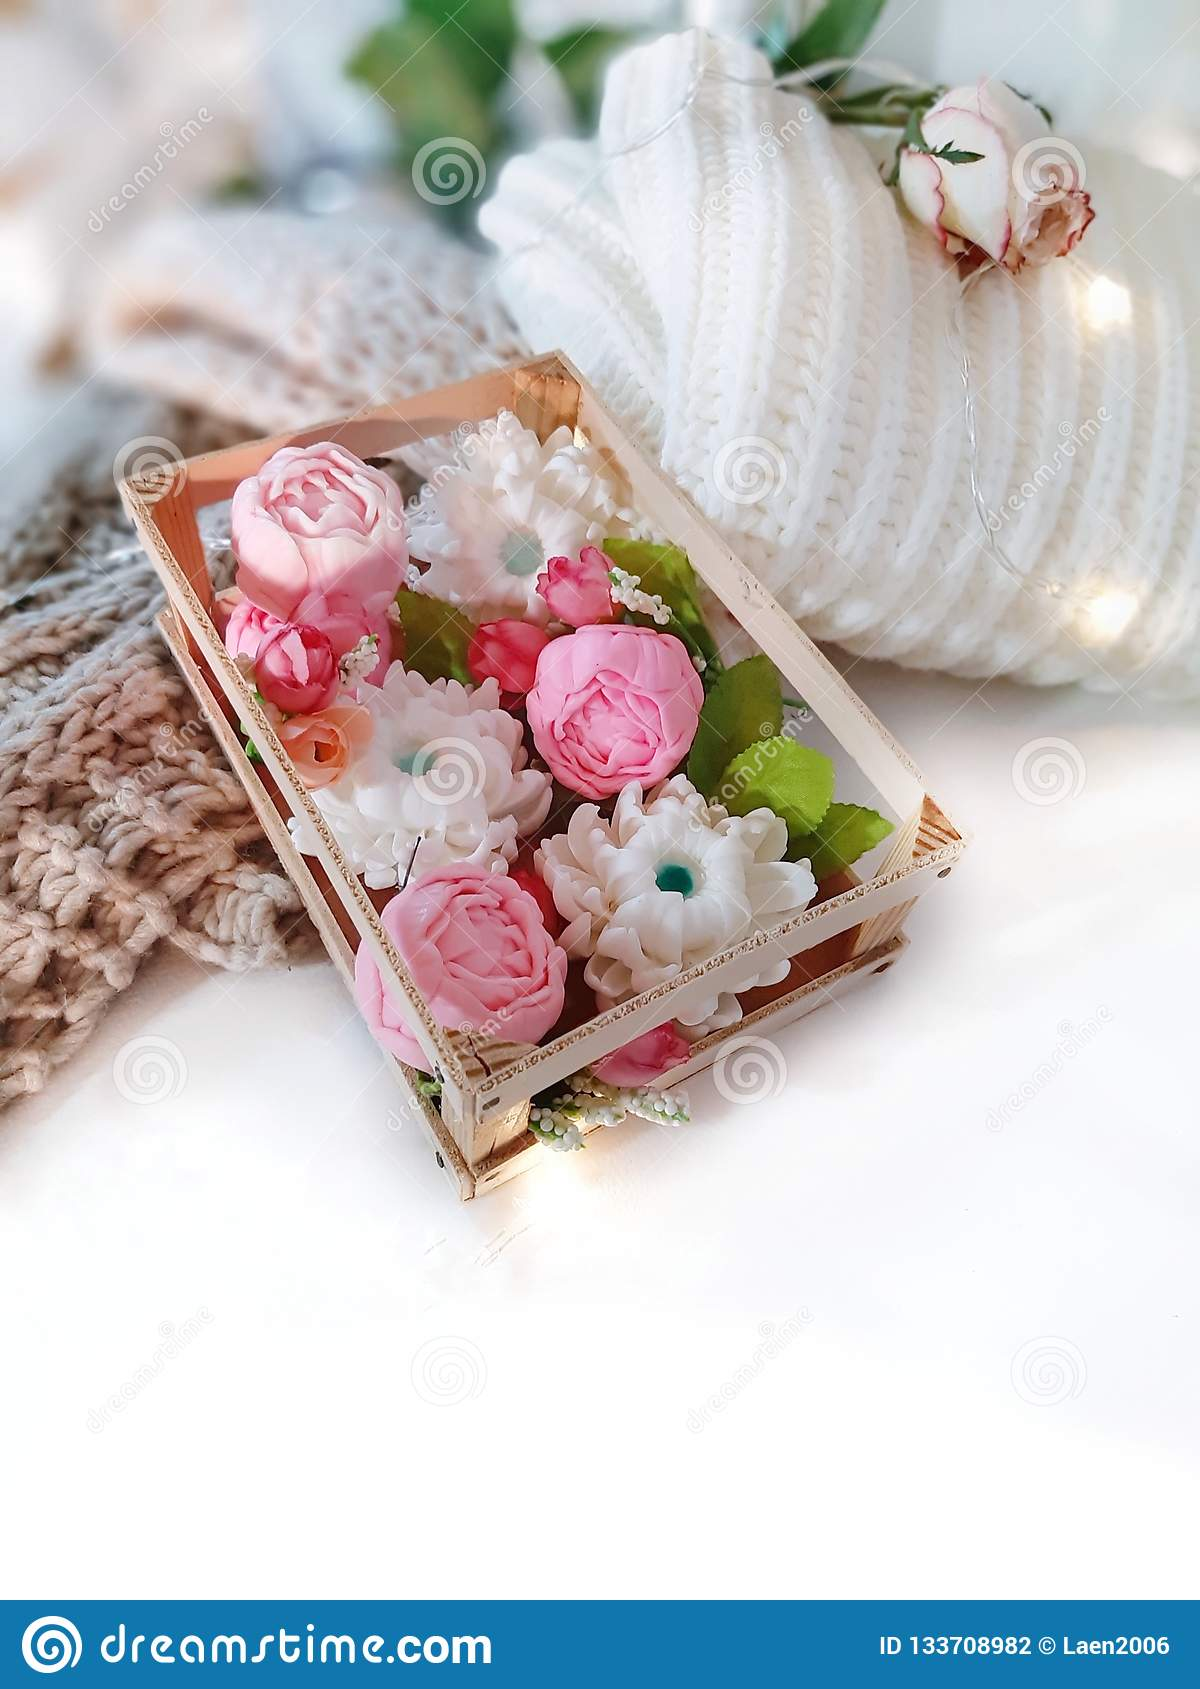 Soap floweres in box, knitted clothing, rose and lights on white background.